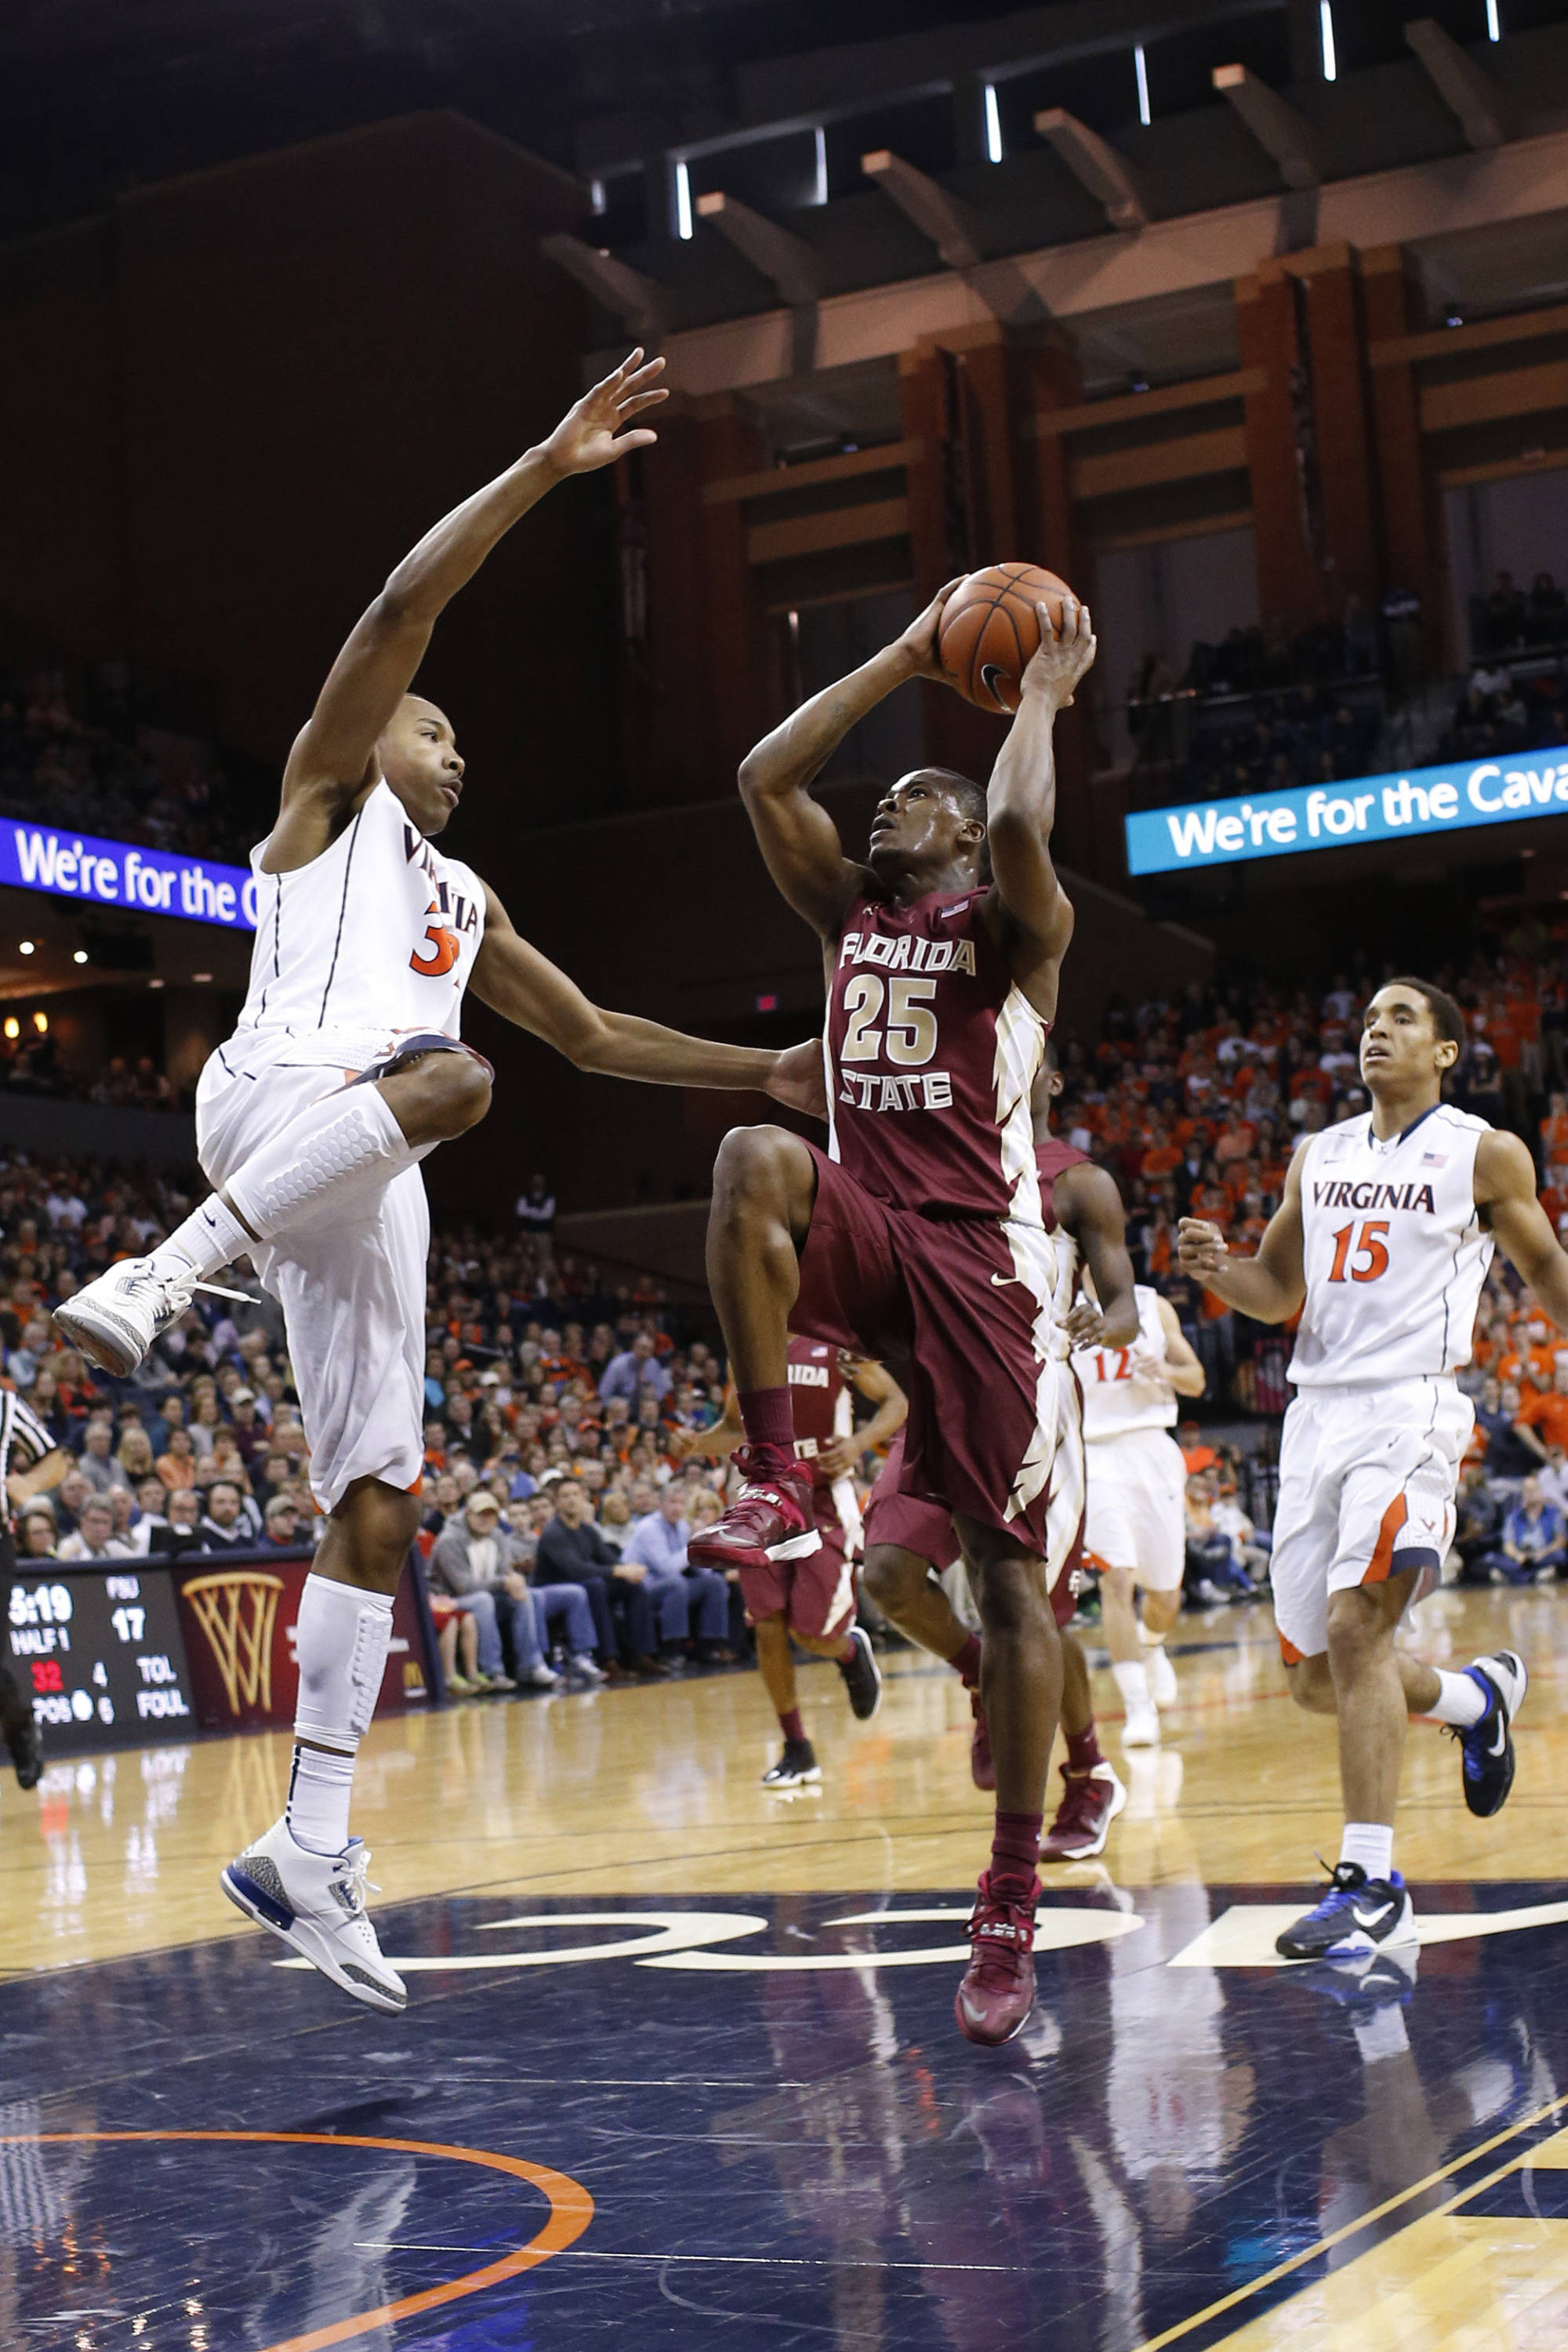 Jan 18, 2014; Charlottesville, VA, USA; Florida State Seminoles guard Aaron Thomas (25) shoots the ball as Virginia Cavaliers forward Darion Atkins (32) defends in the first half at John Paul Jones Arena. Mandatory Credit: Geoff Burke-USA TODAY Sports